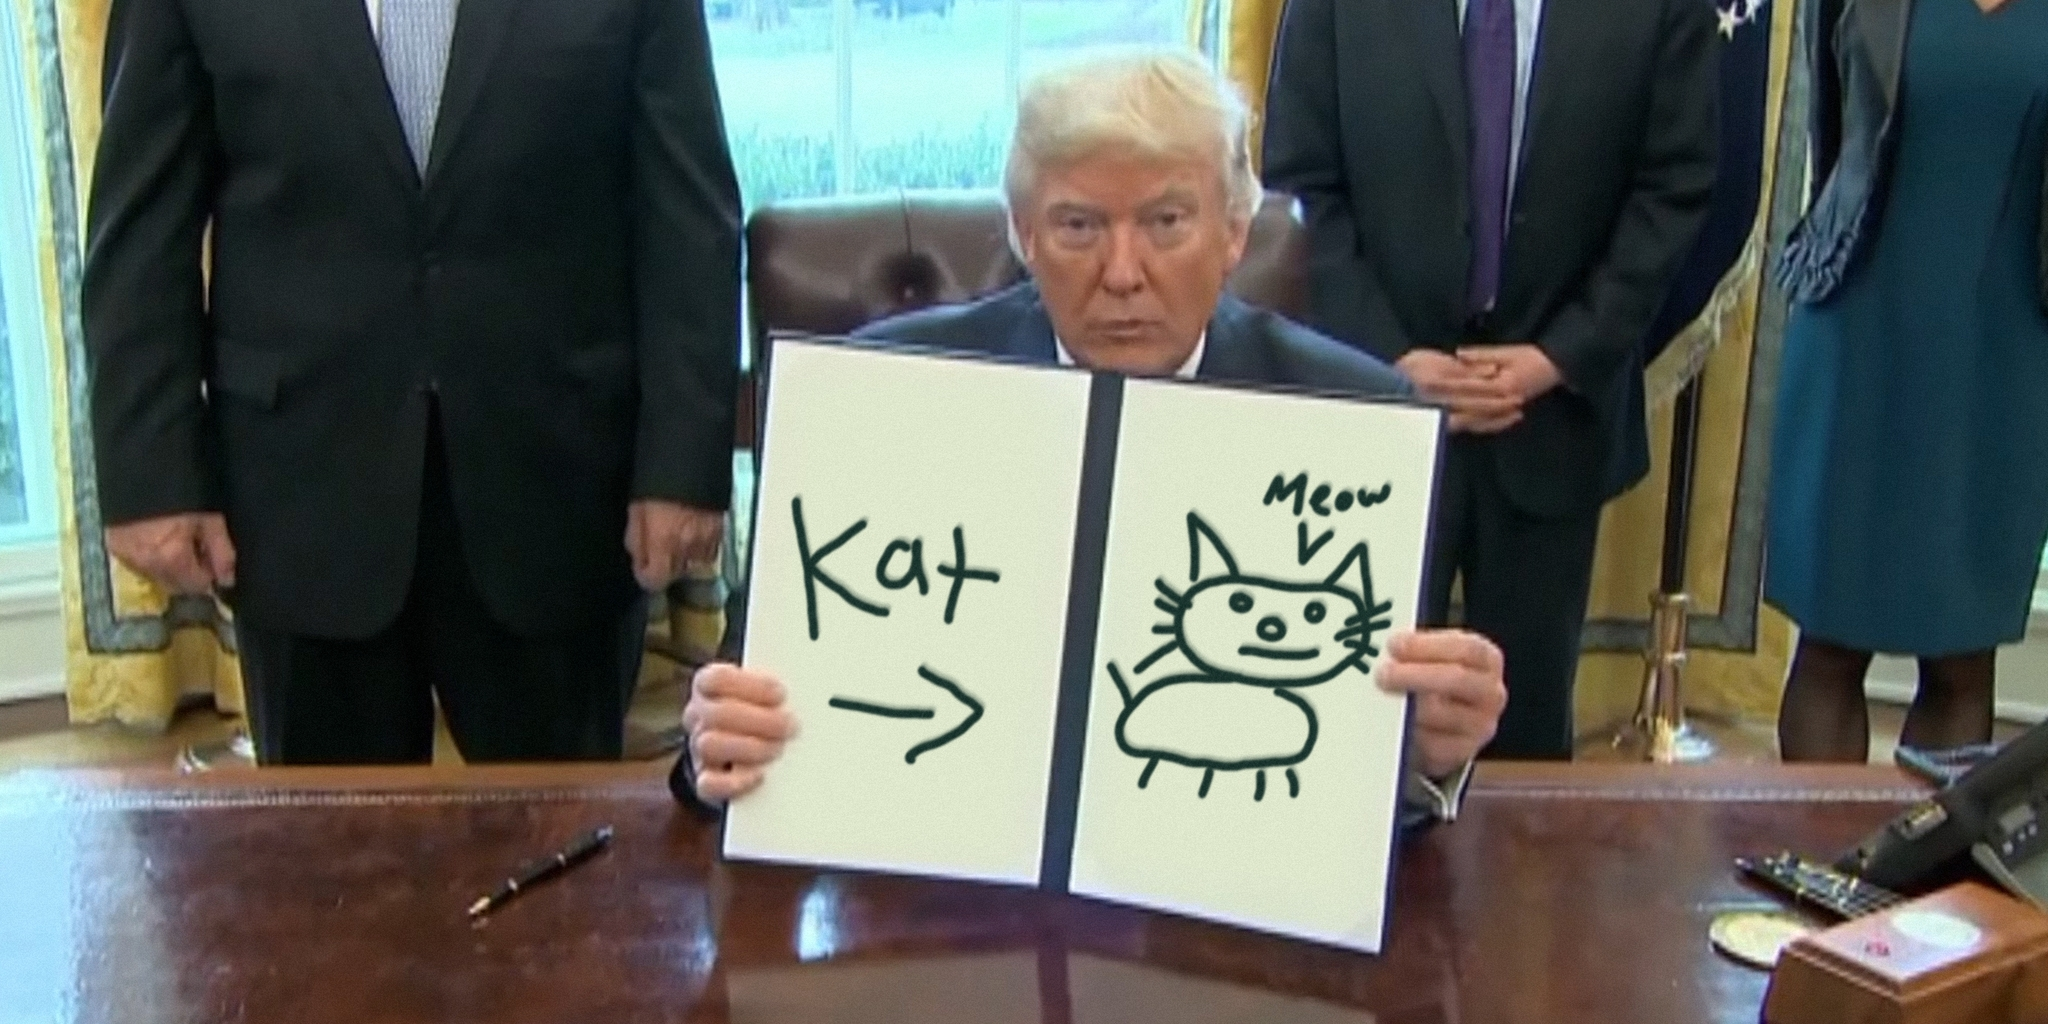 ff078a95ca9c9e3a31c0a761671ffbed create your own trump executive order memes with 'trump draws' app